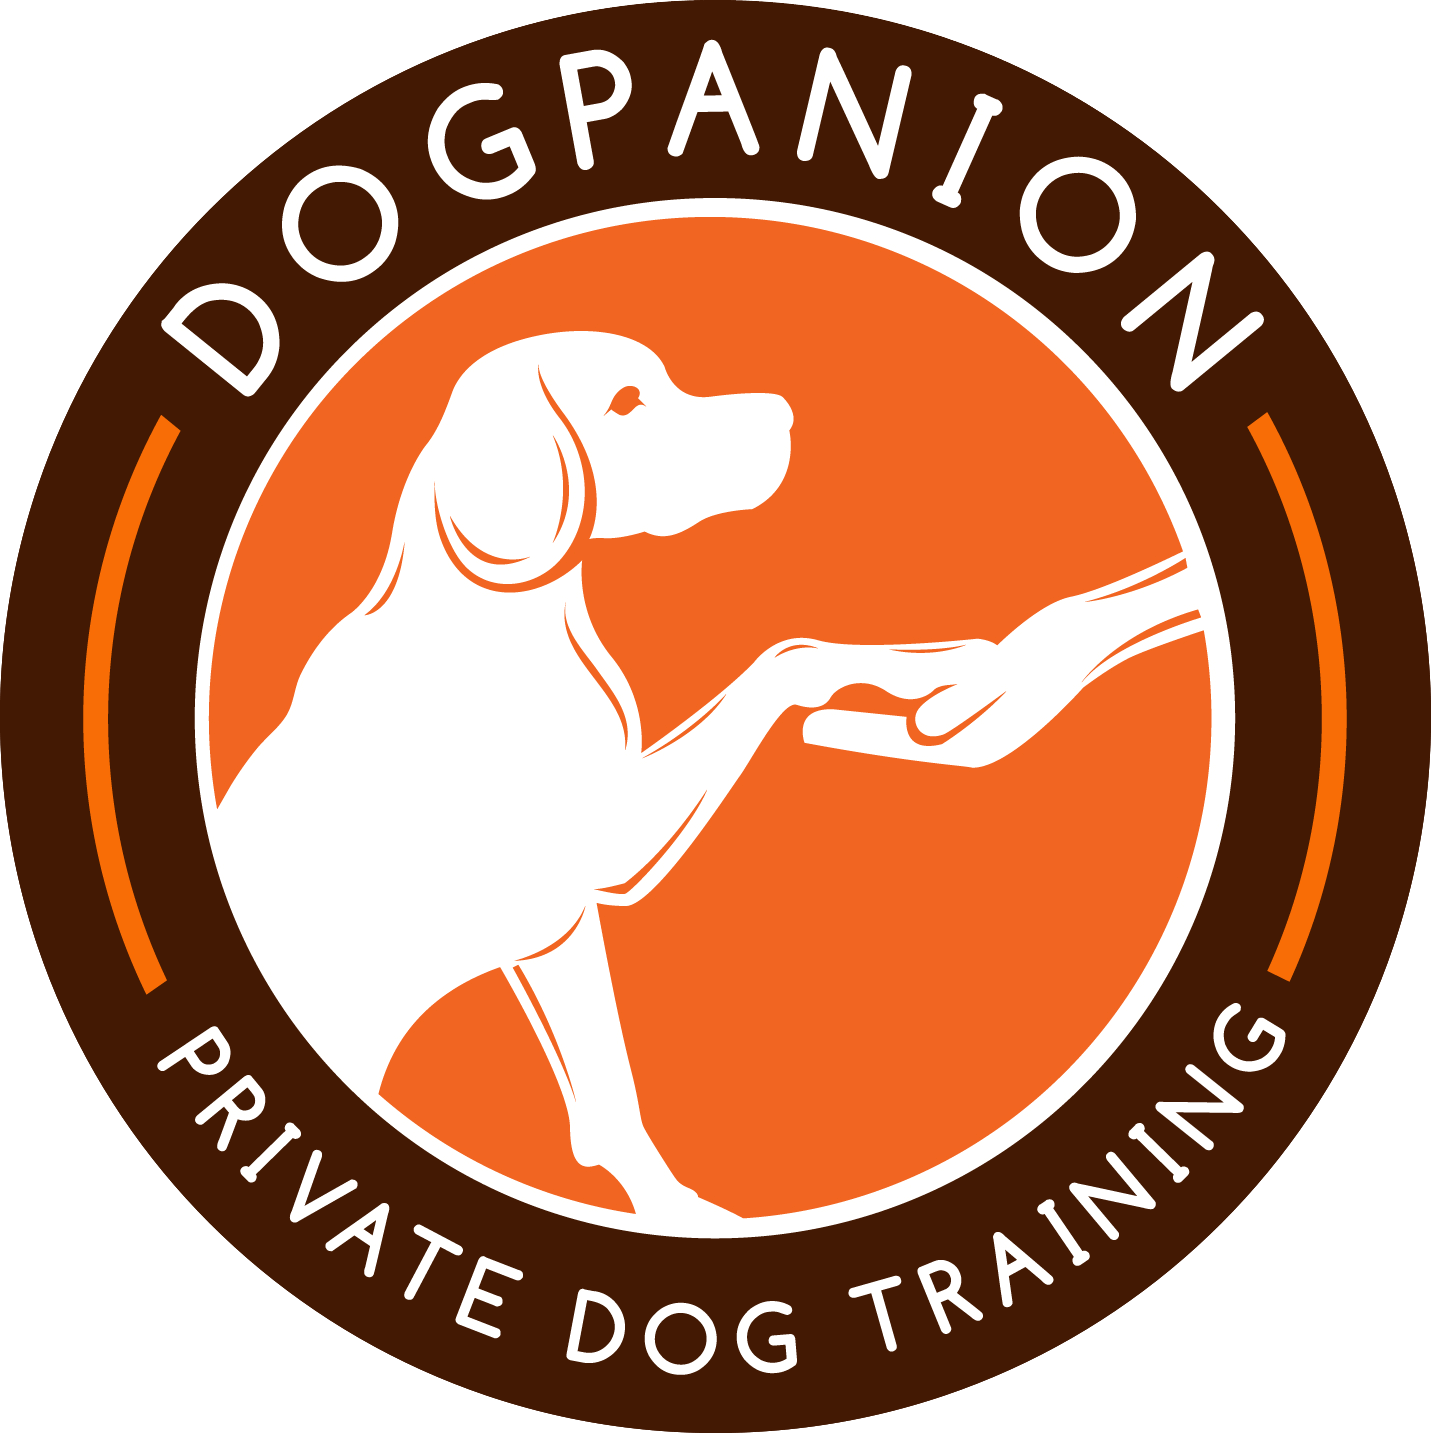 Dogpanion Private Dog Training